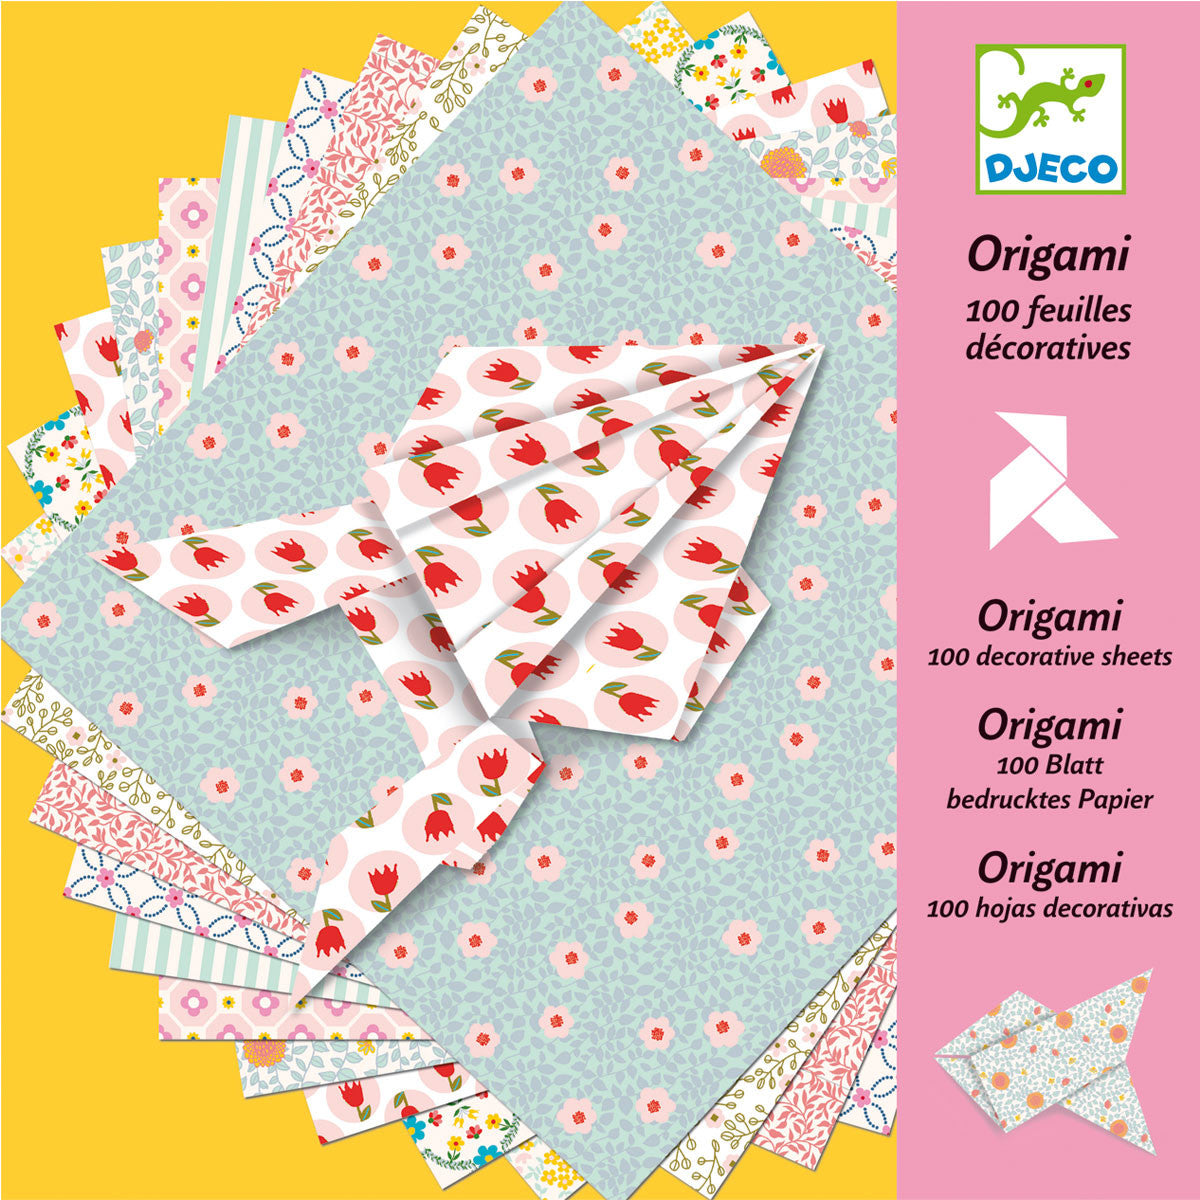 Djeco Origami 100 Sheets Djeco Origami Paper Decorative Sheets at Little Earth Nest Eco Shop